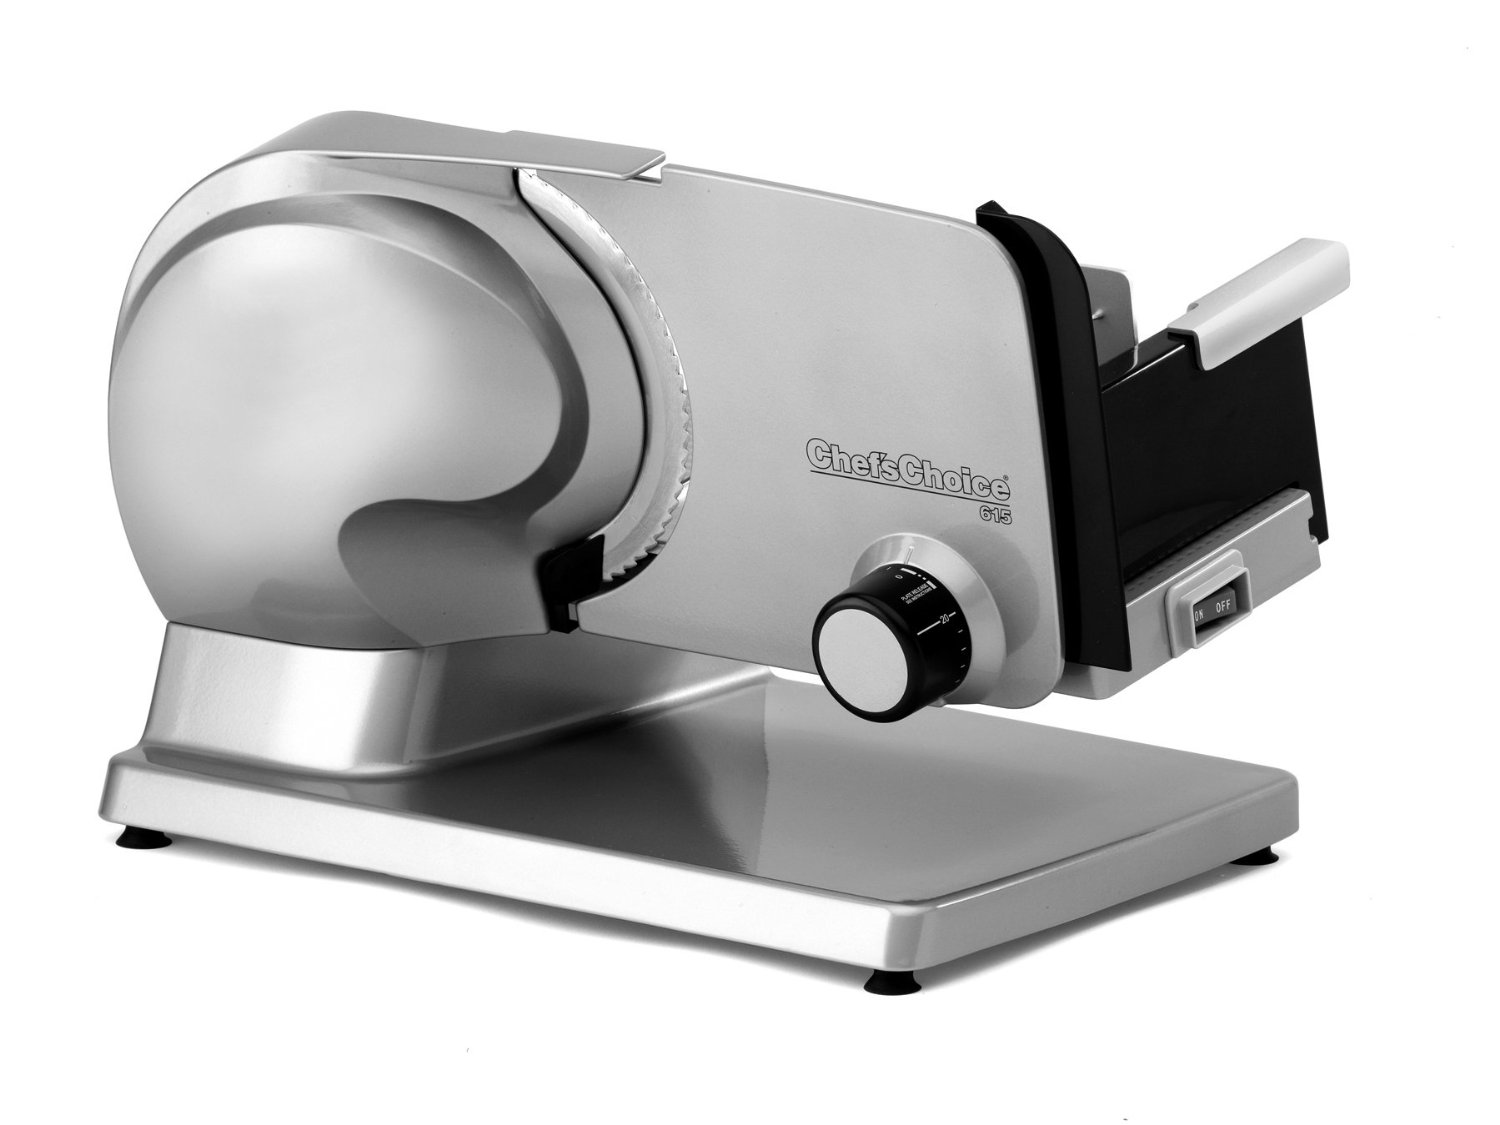 Chef'sChoice® M615 Chef'sChoice® Premium Electric Food Slicer CHEF-M615-MPP2